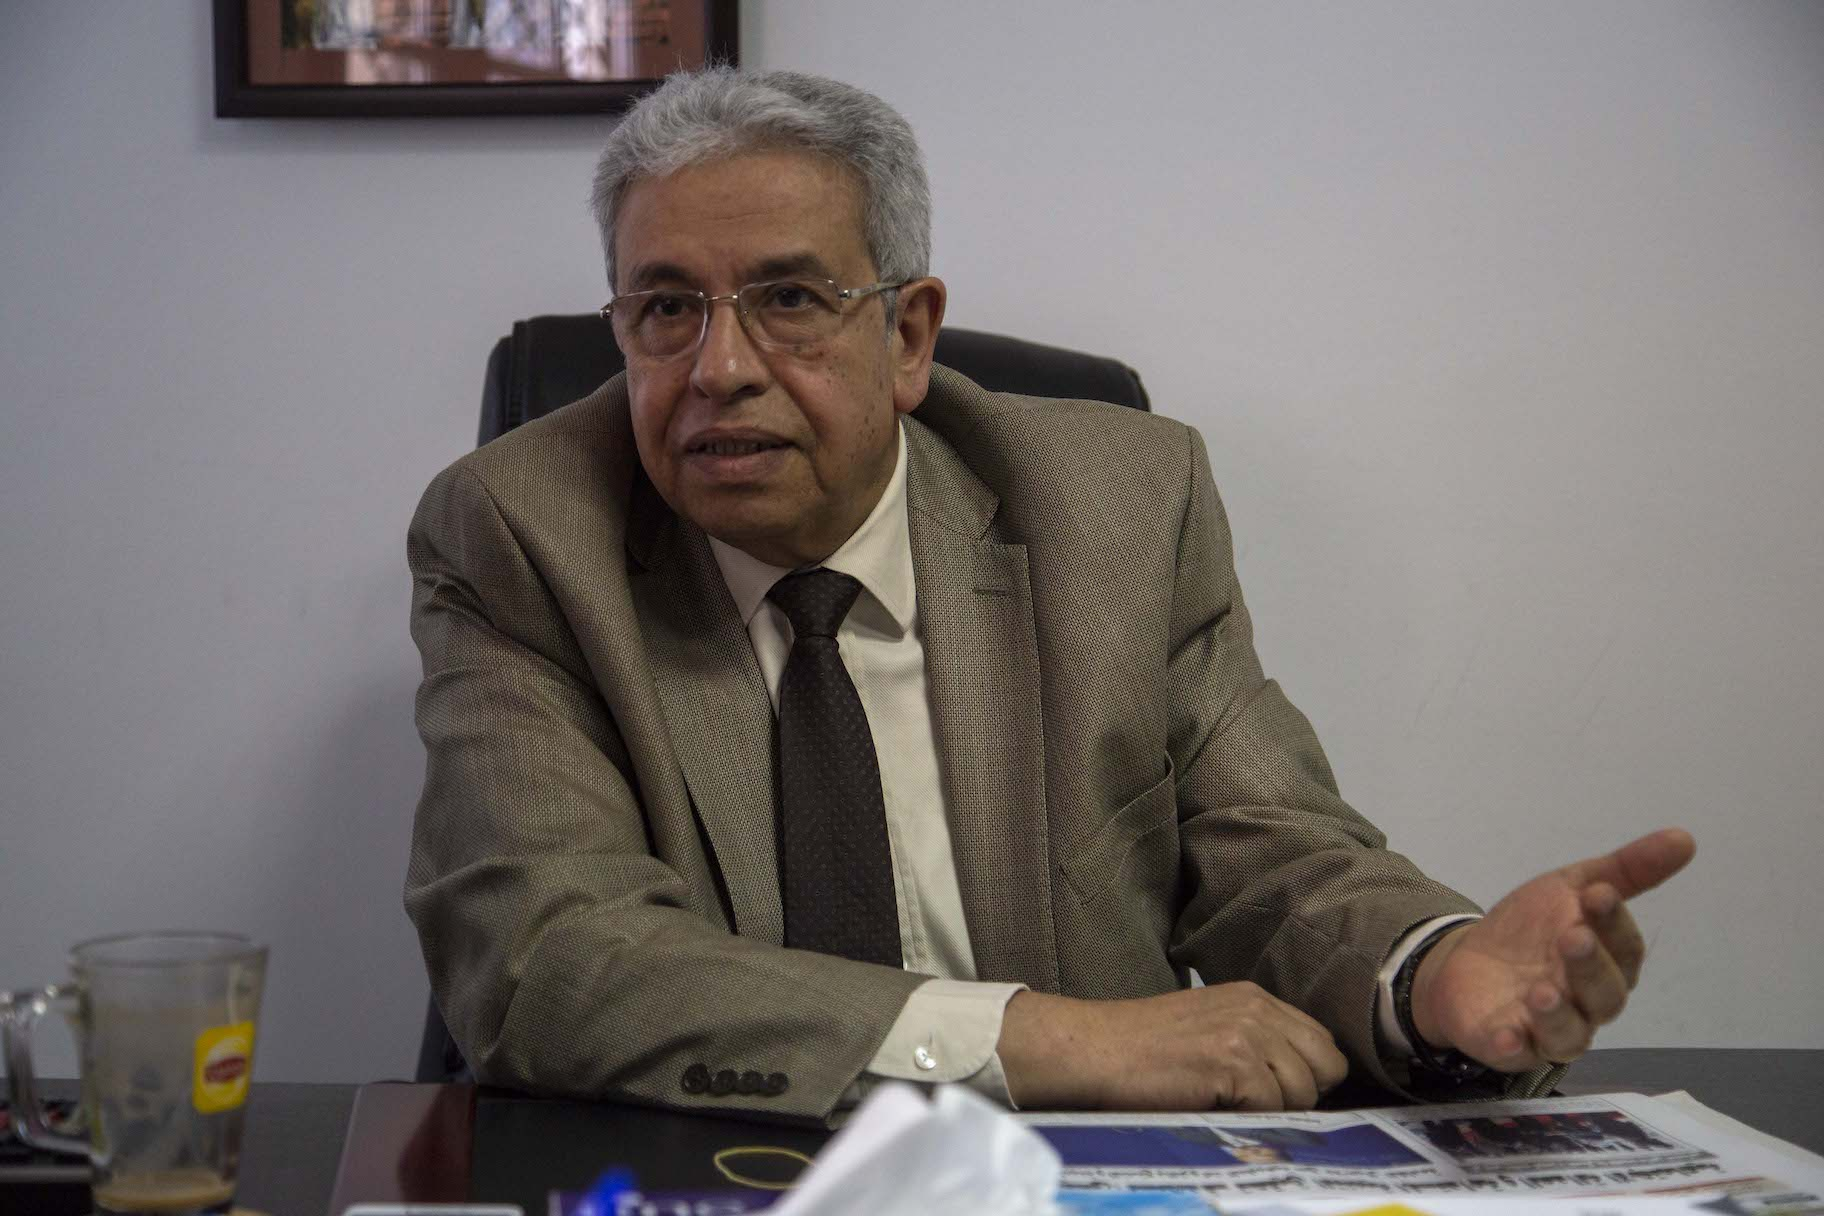 Democracy in Arab world leads to civil wars, I refuse calls to amend Constitution: Dr. Abdelmoneim El Saeed - Daily News Egypt